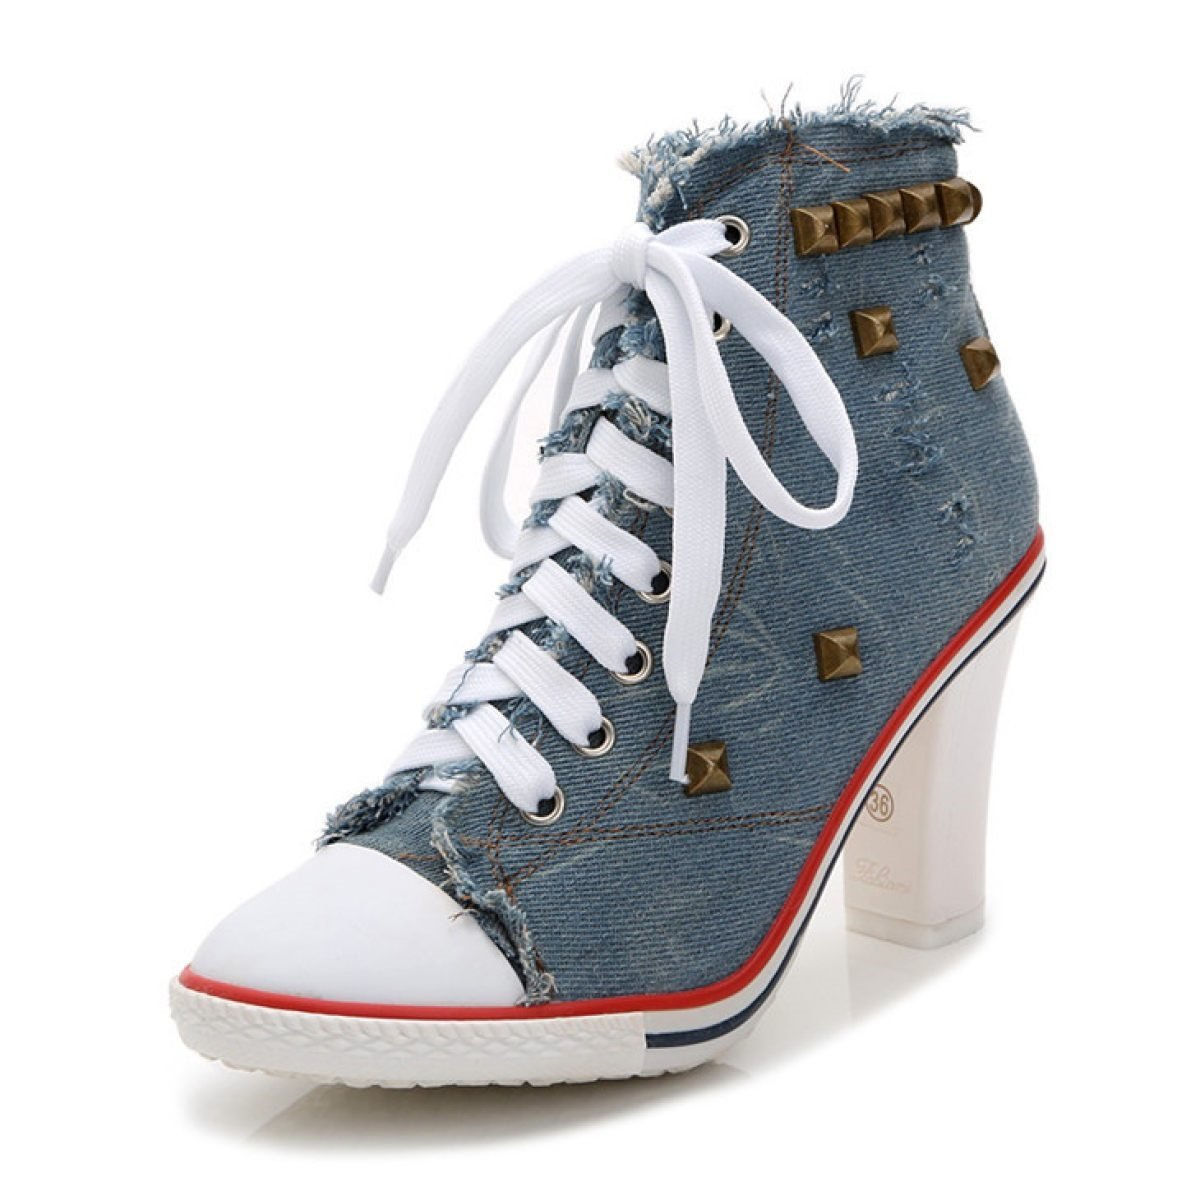 NBWE Frauen Denim Student High Heels Canvas Schnür Niet Student Denim Schuhe Blau c3168b